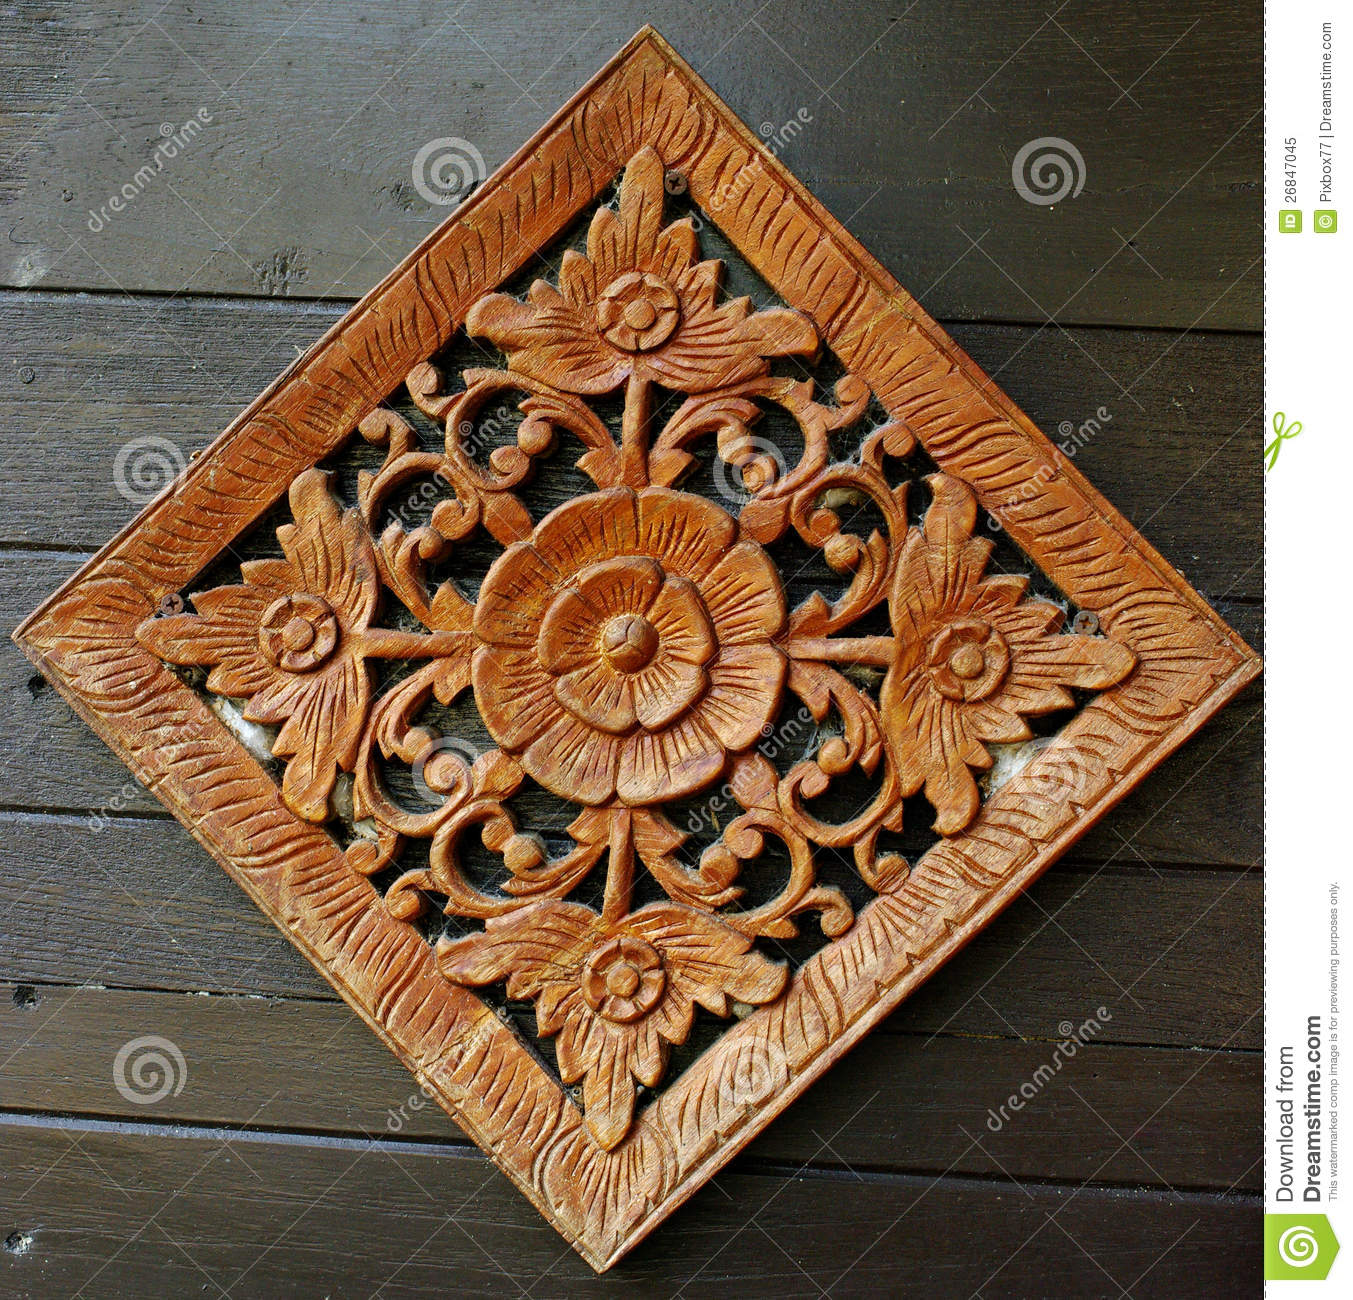 Flower Carving Art On Wooden Wall Royalty Free Stock Photo